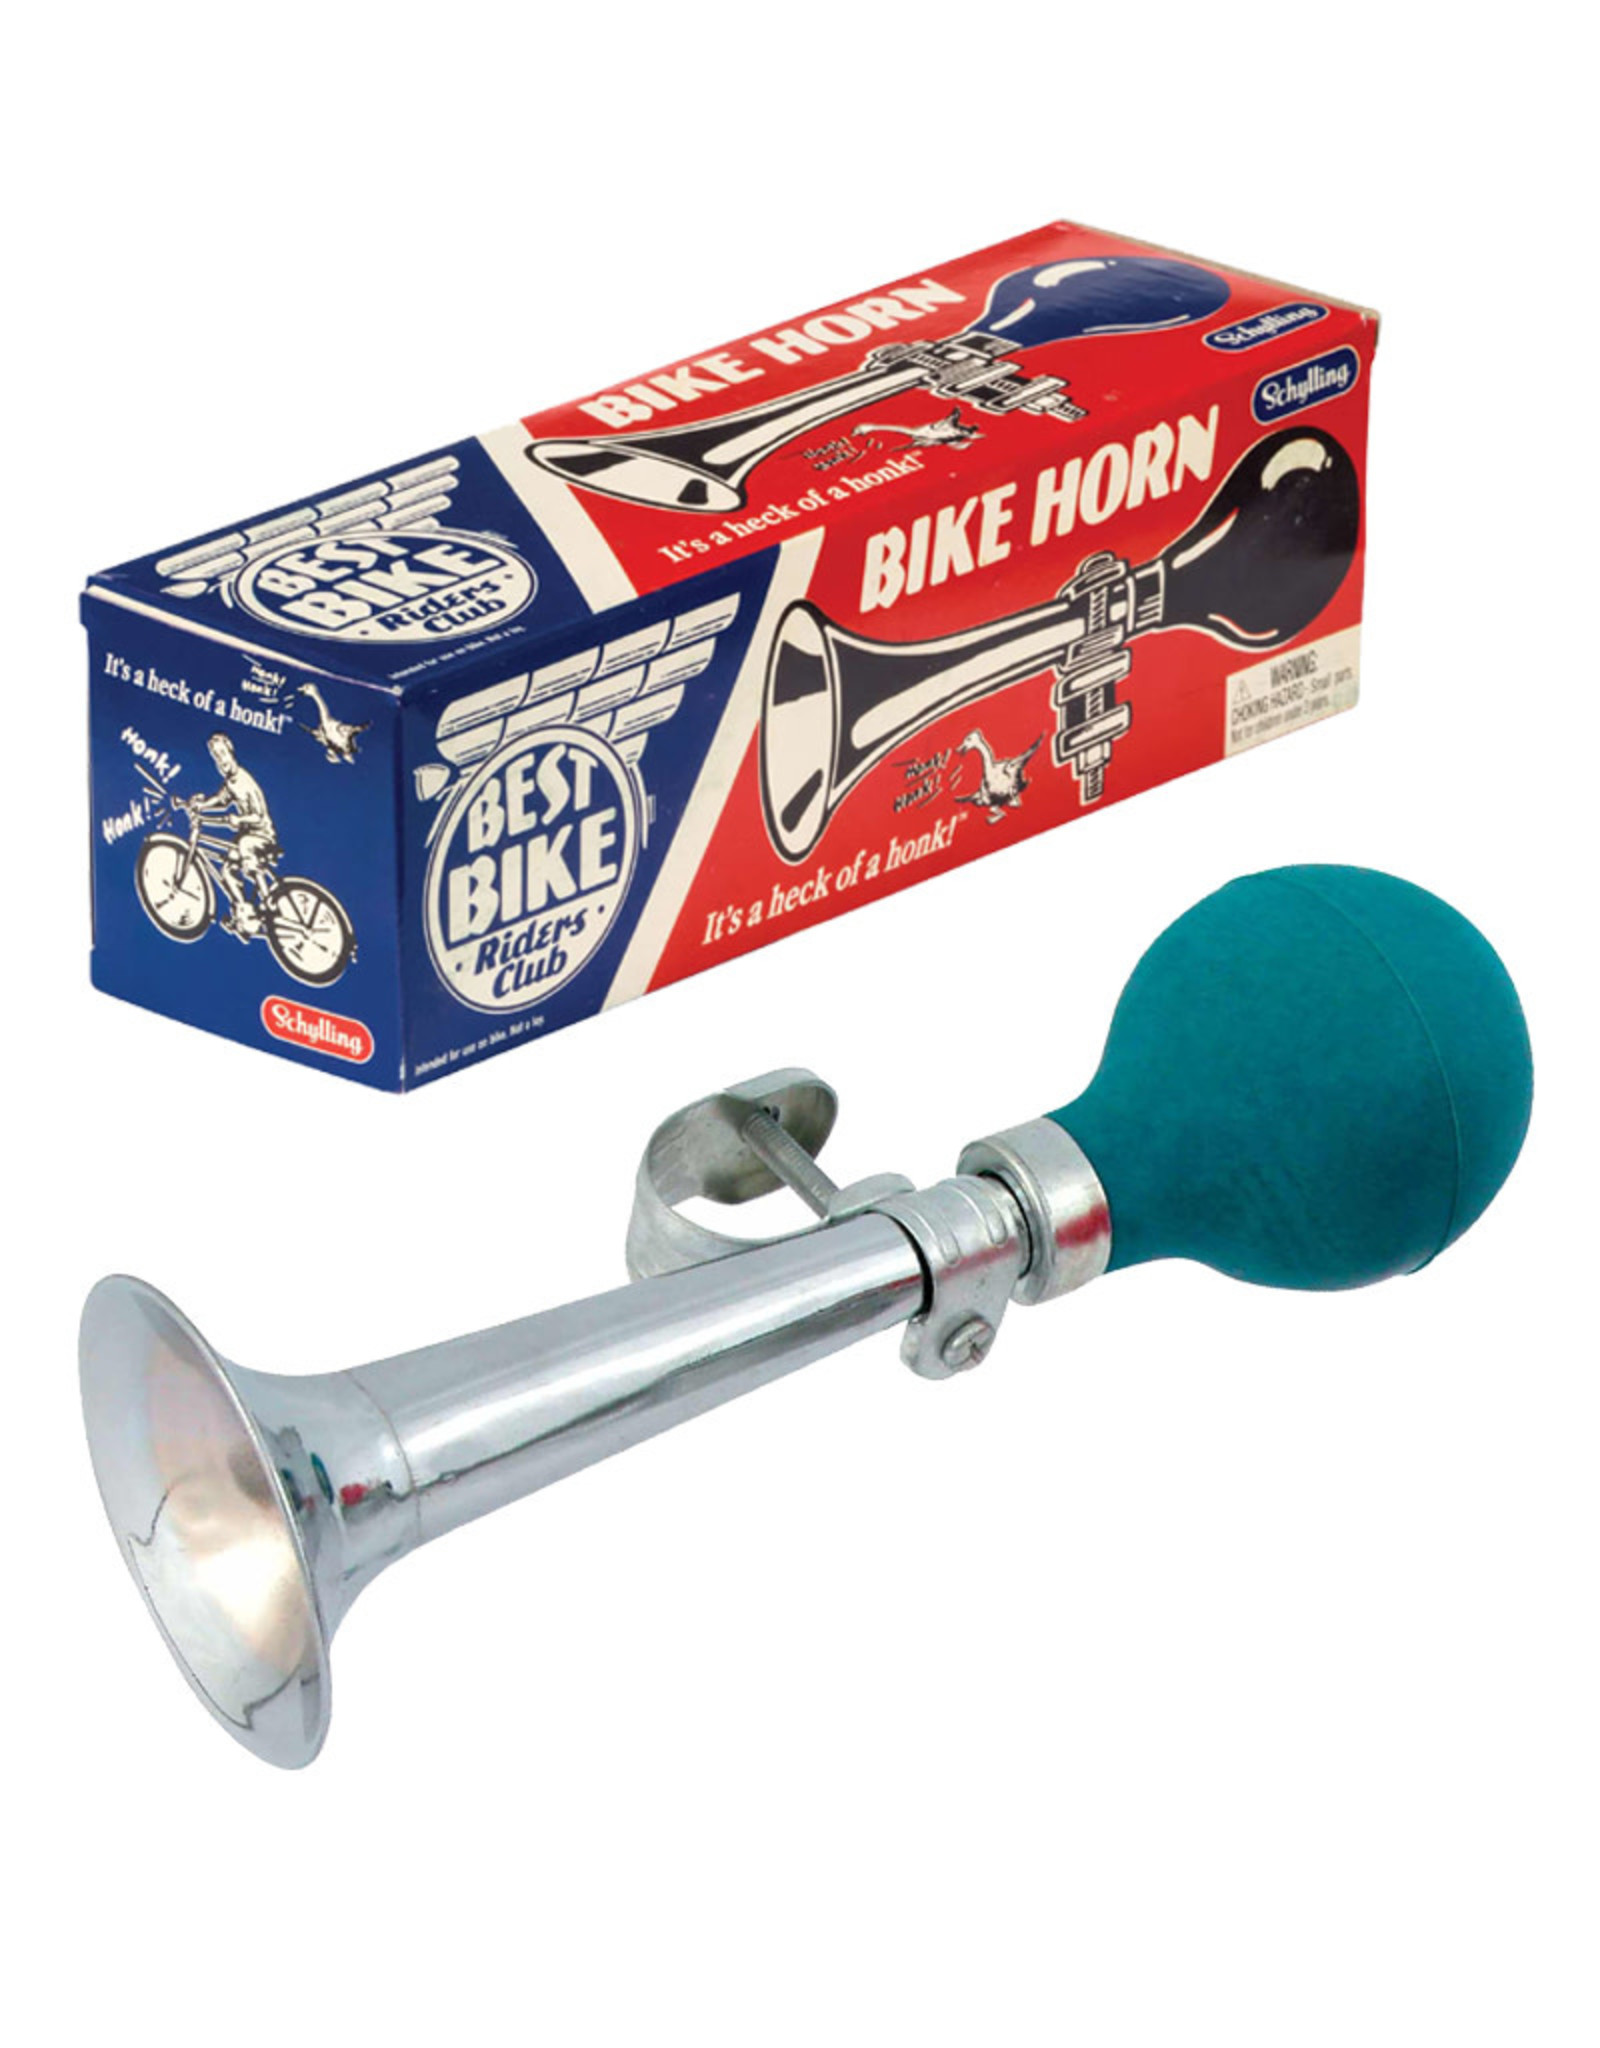 Bicycle Horn ( Retro Toy )